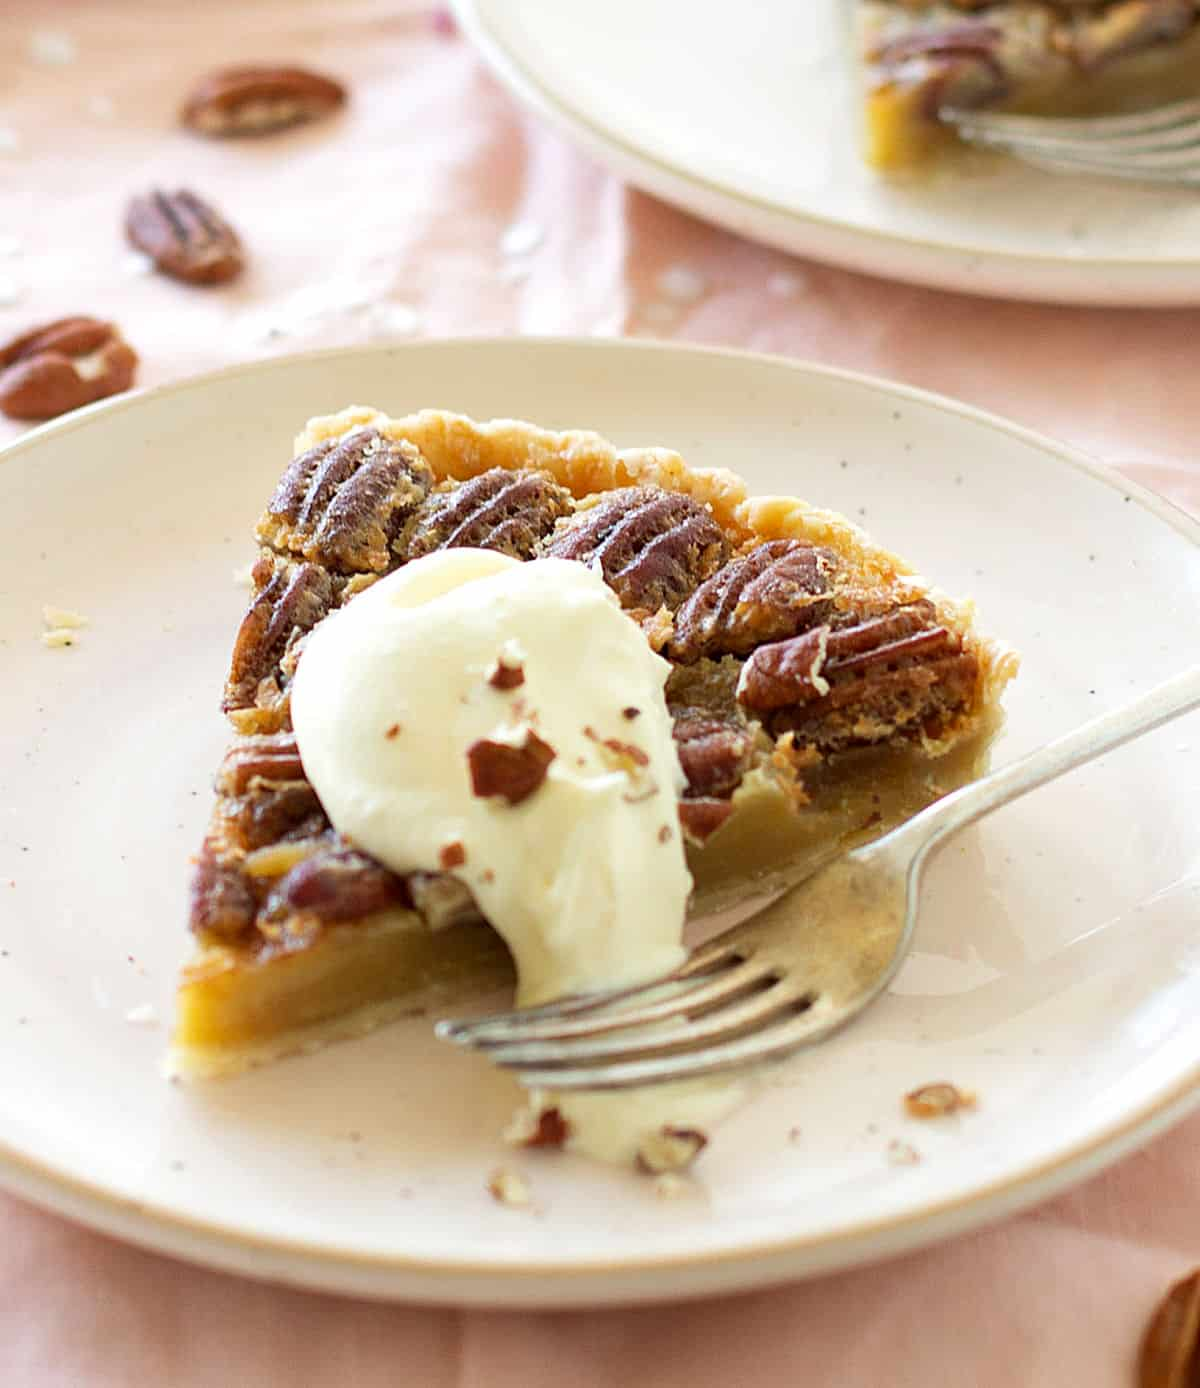 Single slice of pecan pie in light pink plate, dollop of cream, fork. Pink tablecloth